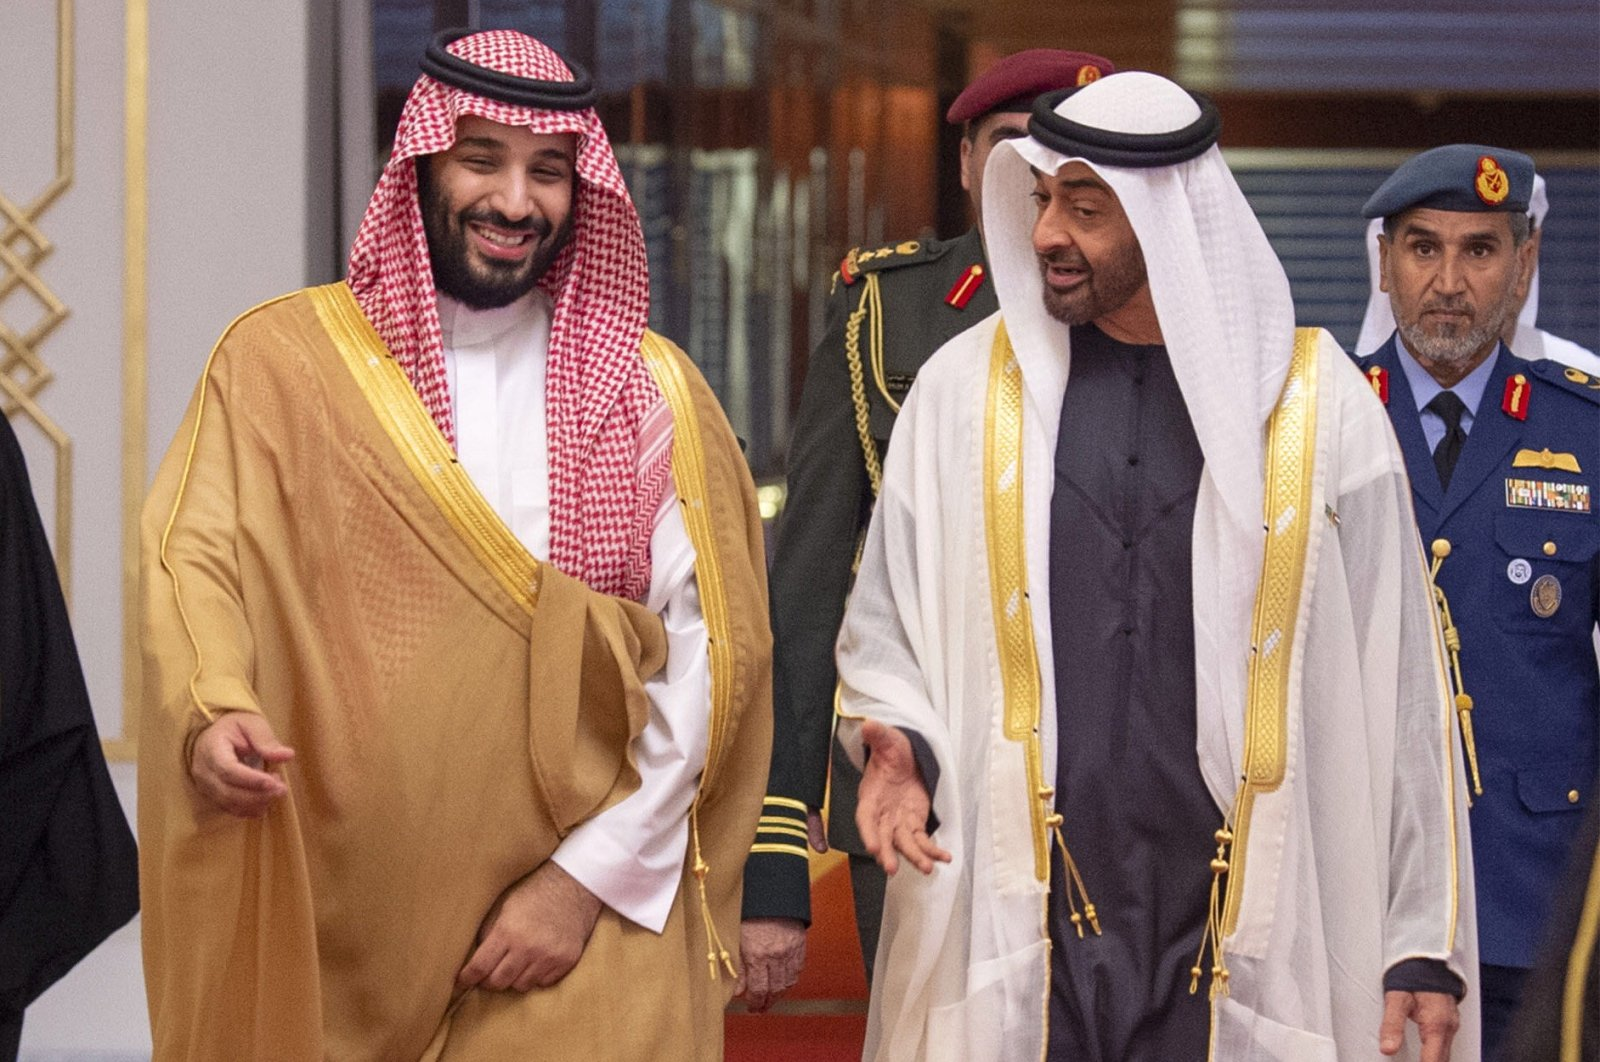 A handout picture provided by the Saudi Royal Palace shows Saudi Crown Prince Mohammed bin Salman (L) being received by Abu Dhabi's crown prince and deputy supreme commander of the UAE armed forces, Sheikh Mohamed bin Zayed Al Nahyan, upon the former's arrival in Abu Dhabi, Nov. 22, 2018. (AFP Photo)